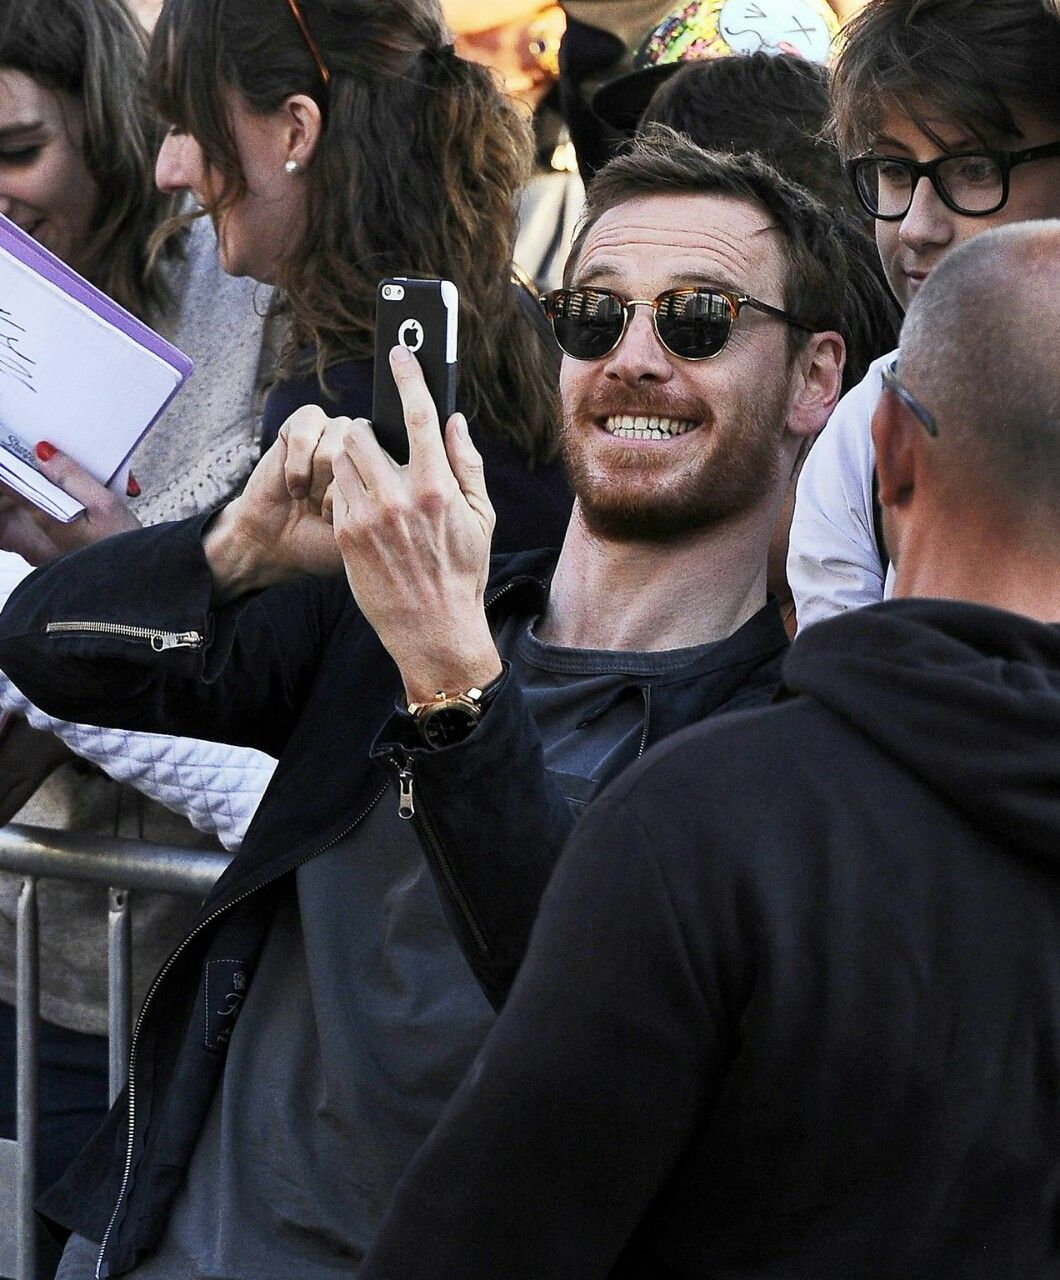 Michael Fassbender is such a sweetheart